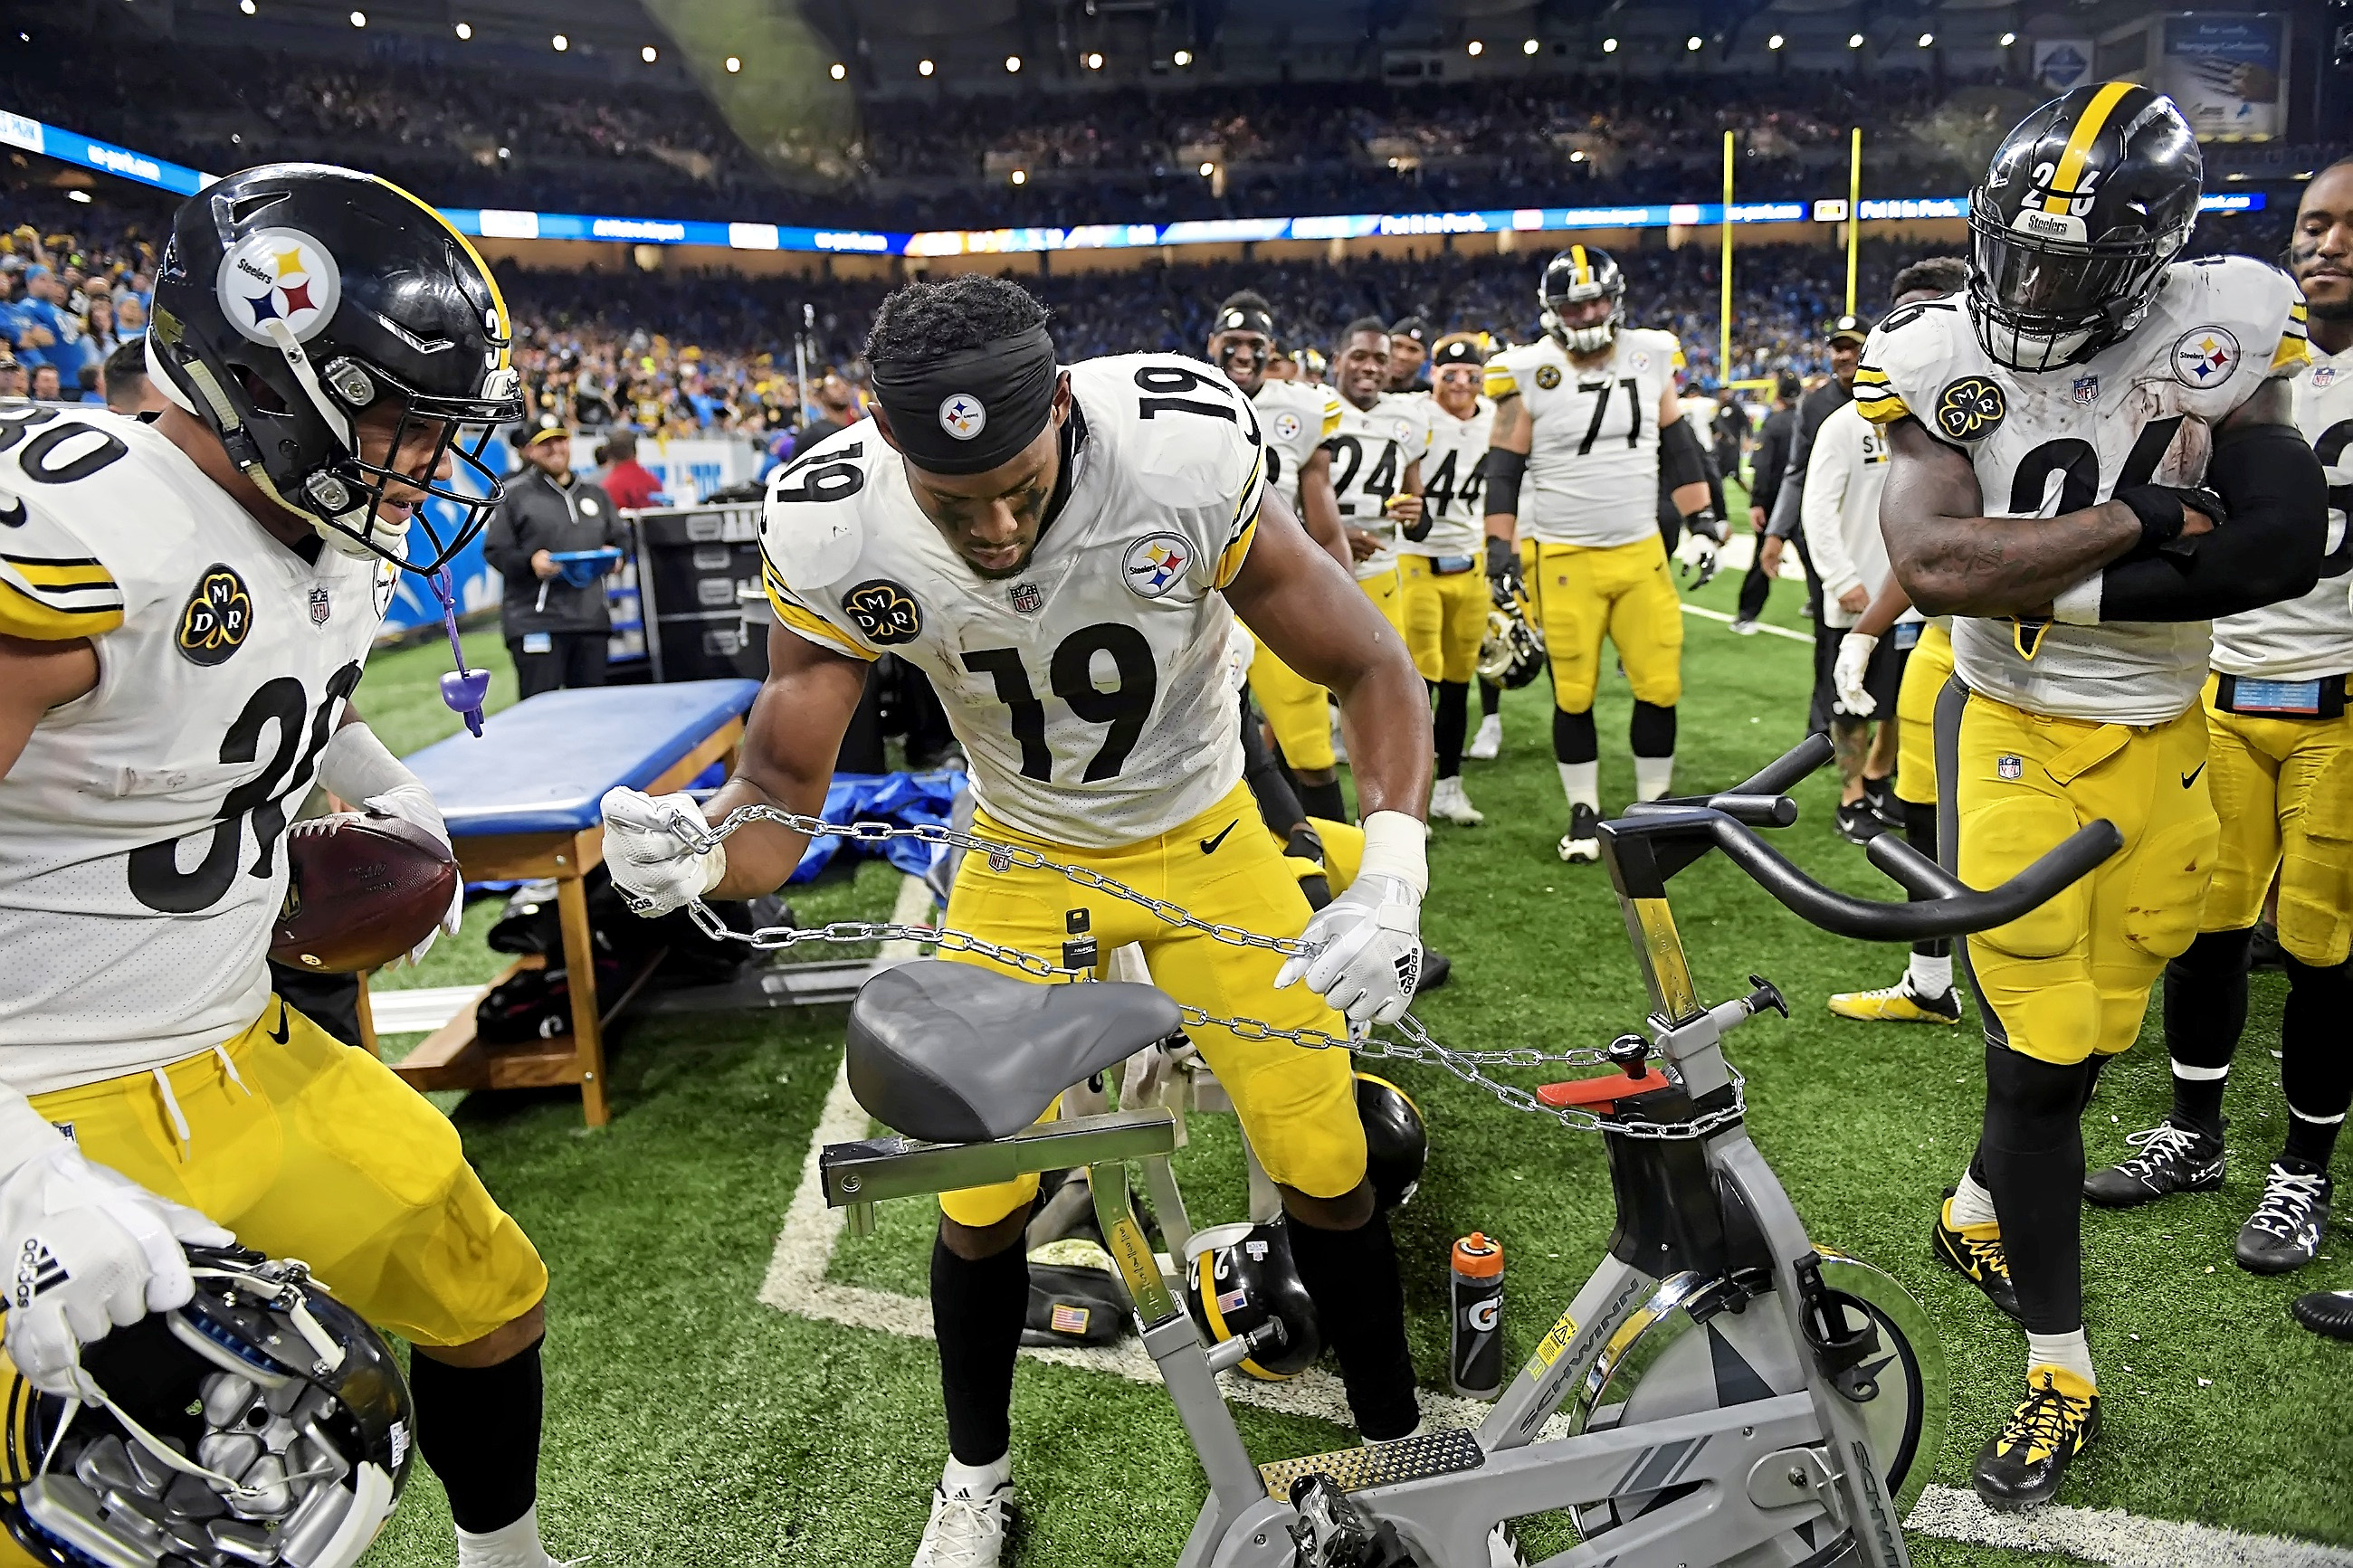 JuJu Smith-Schuster sparks memories of Franco Harris. Here's how ...